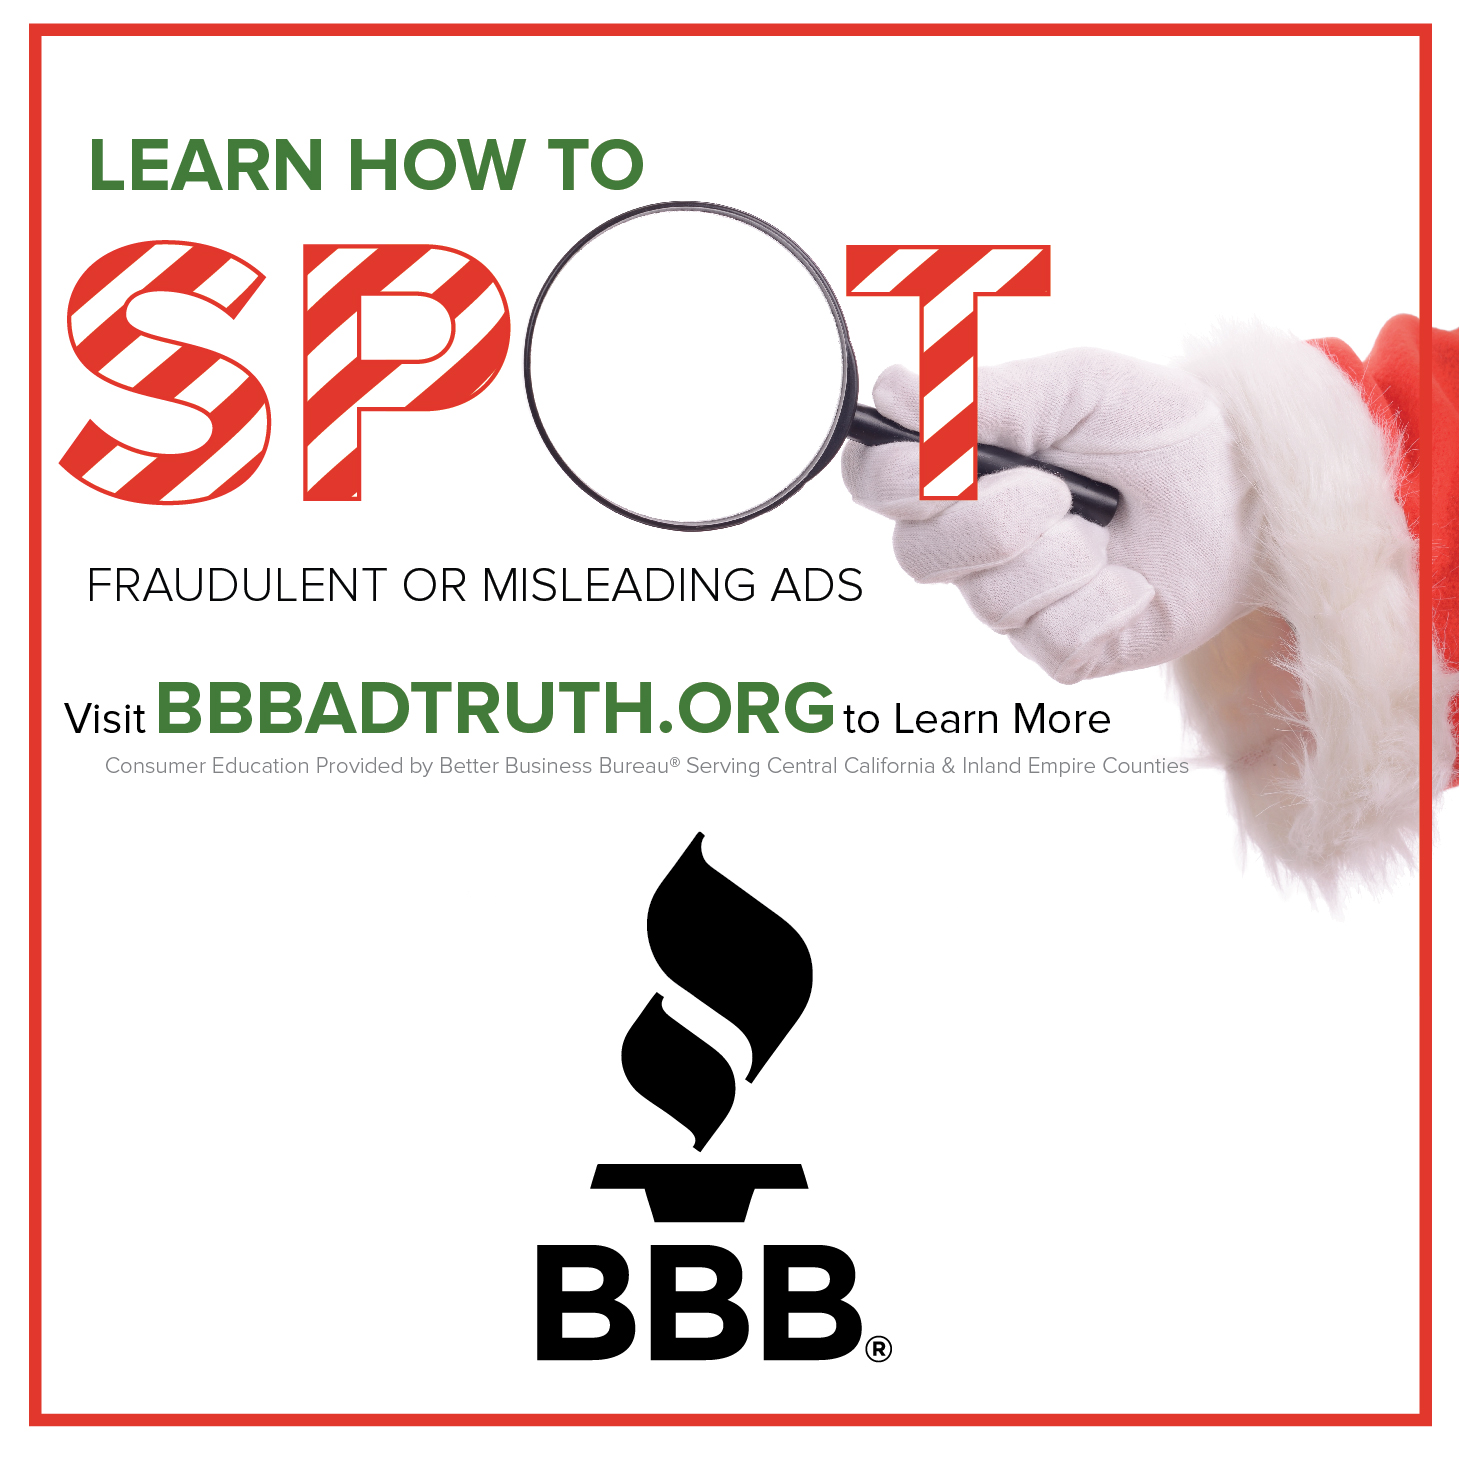 bbb serving central california & inland empire counties: start with